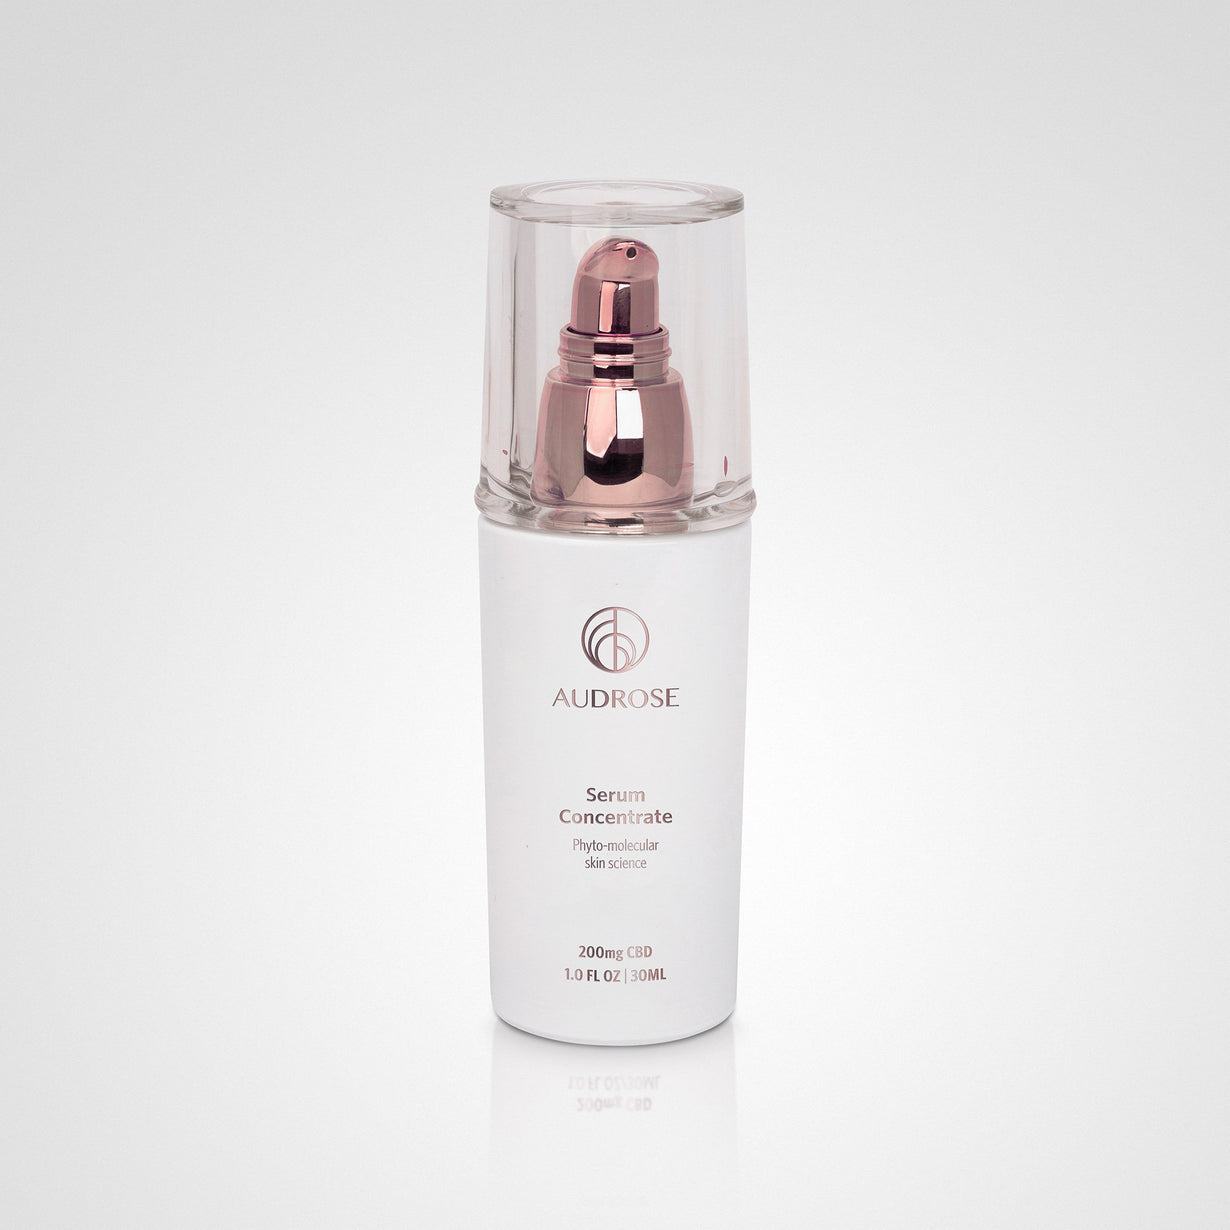 Audrose™ Serum Concentrate